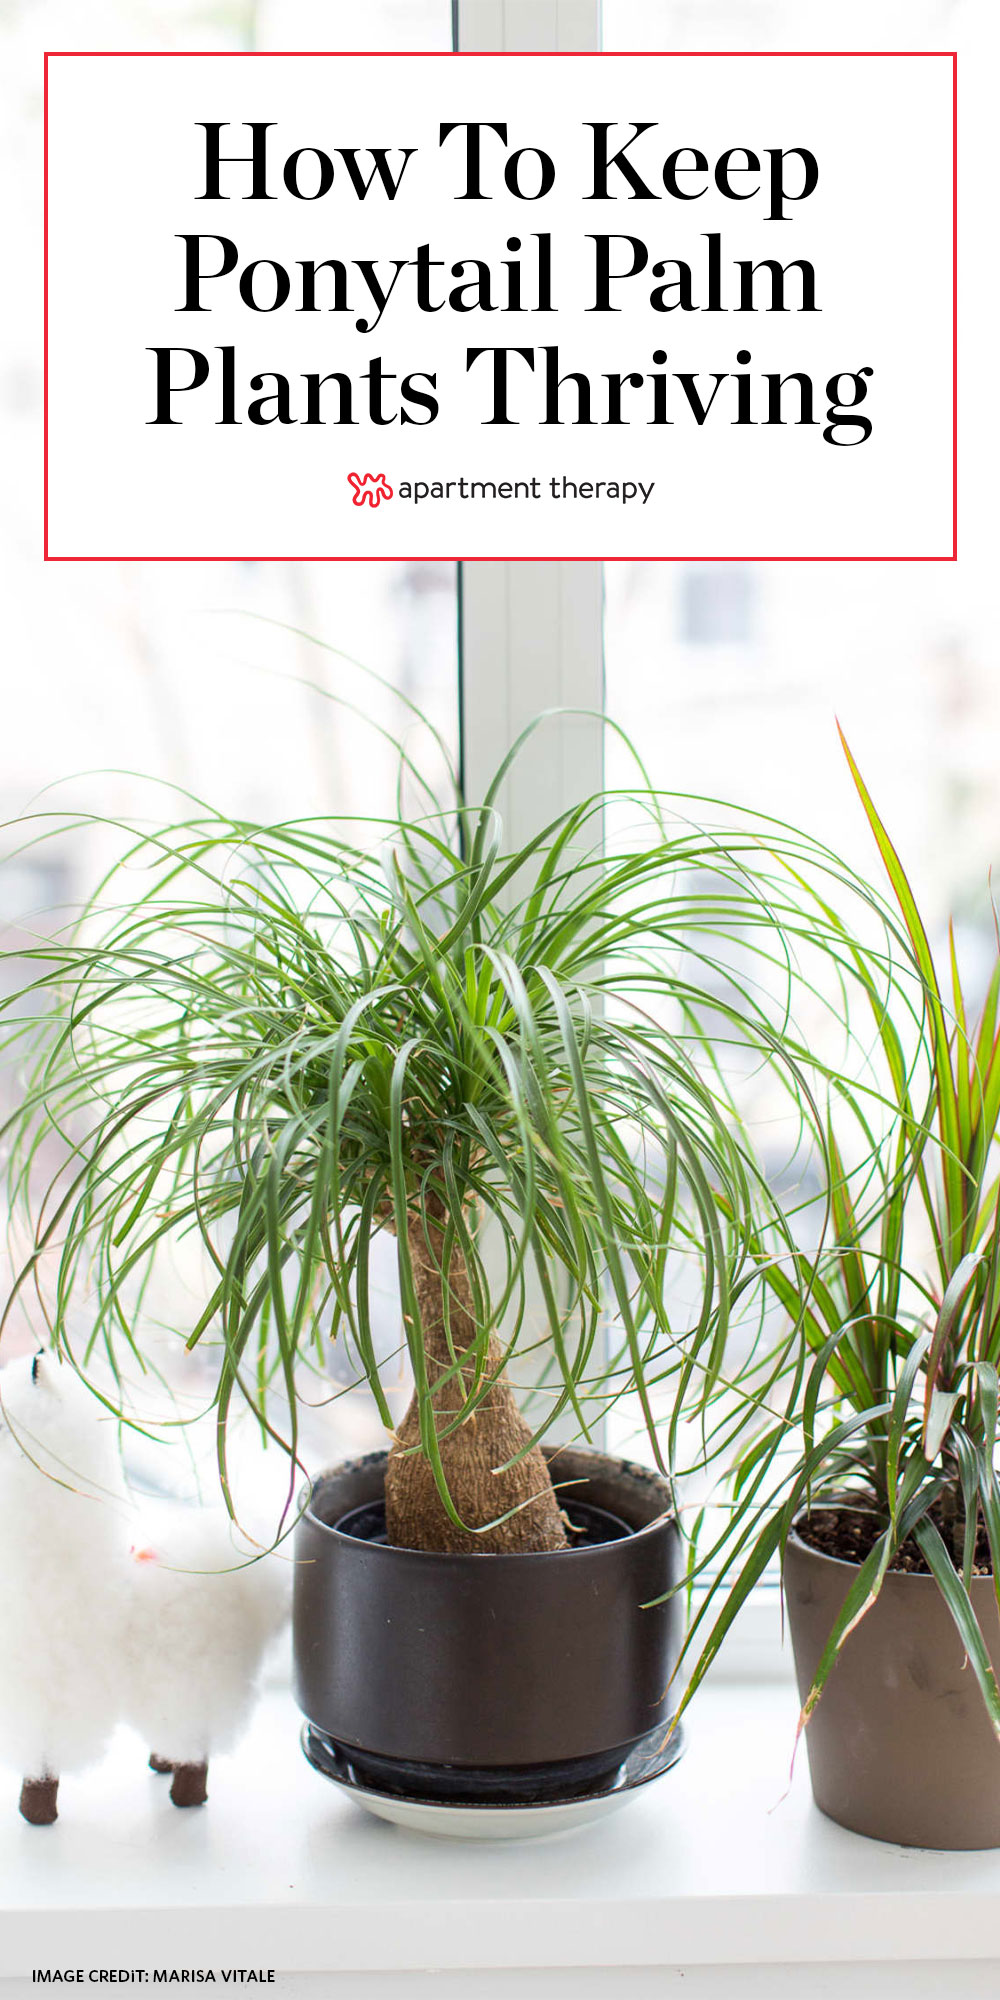 Ponytail Palm Tree Care How To Grow Maintain Ponytail Palm Tree Indoors Apartment Therapy